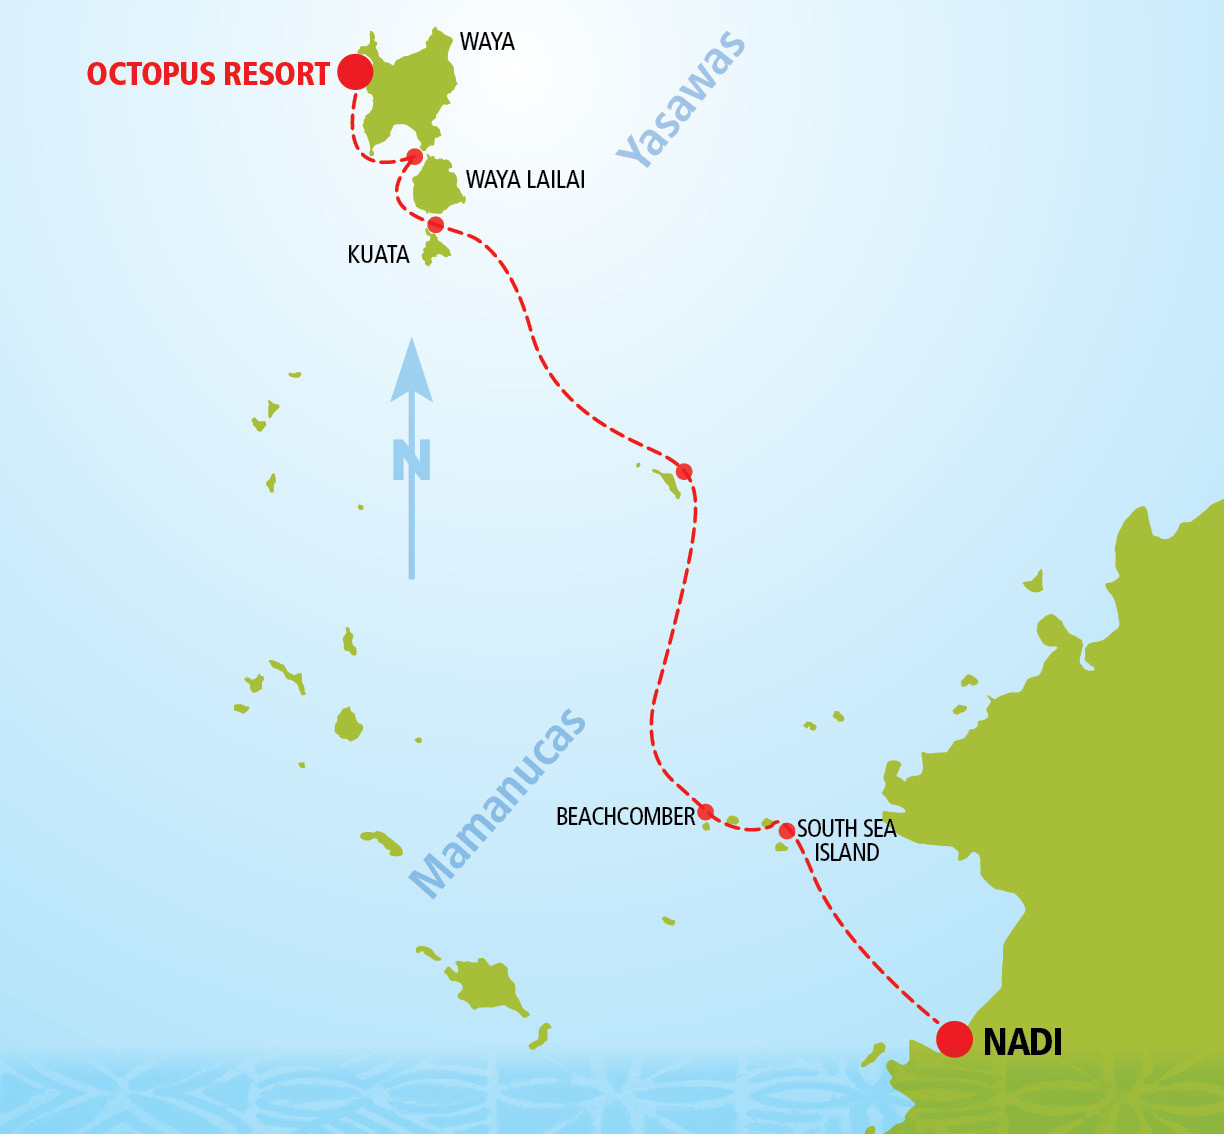 Octopus Day Cruise Route Map